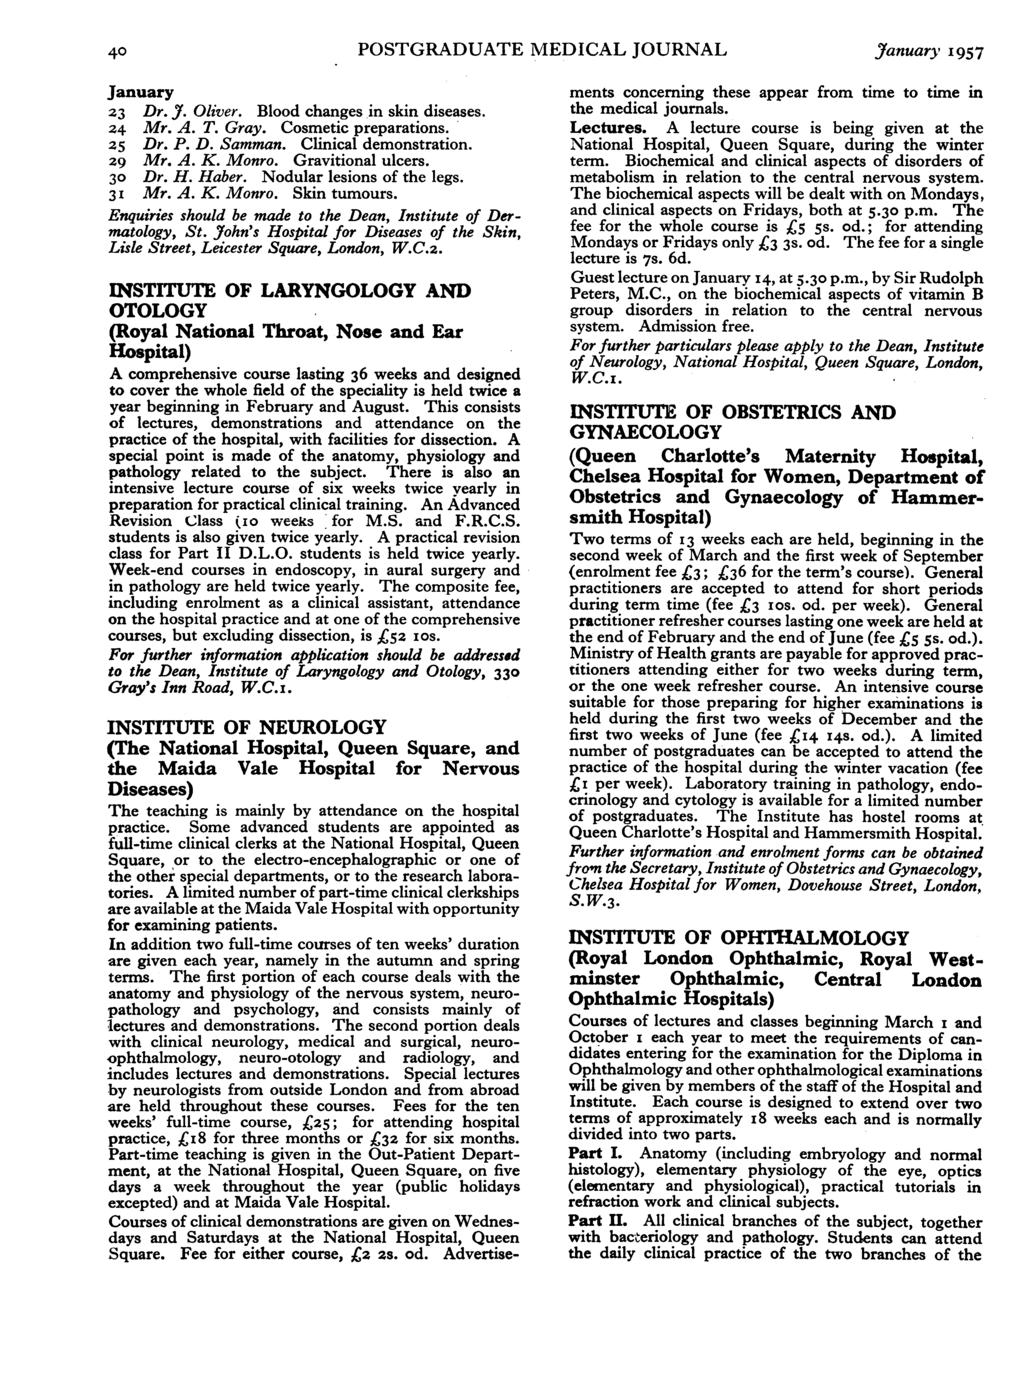 40 POSTGRADUATE MEDICAL JOURNAL January 1957 January 23 Dr. J. Oliver. Blood changes in skin diseases. 24 Mr. A. T. Gray. Cosmetic preparations. 25 Dr. P. D. Samman. Clinical demonstration. 29 Mr. A. K.